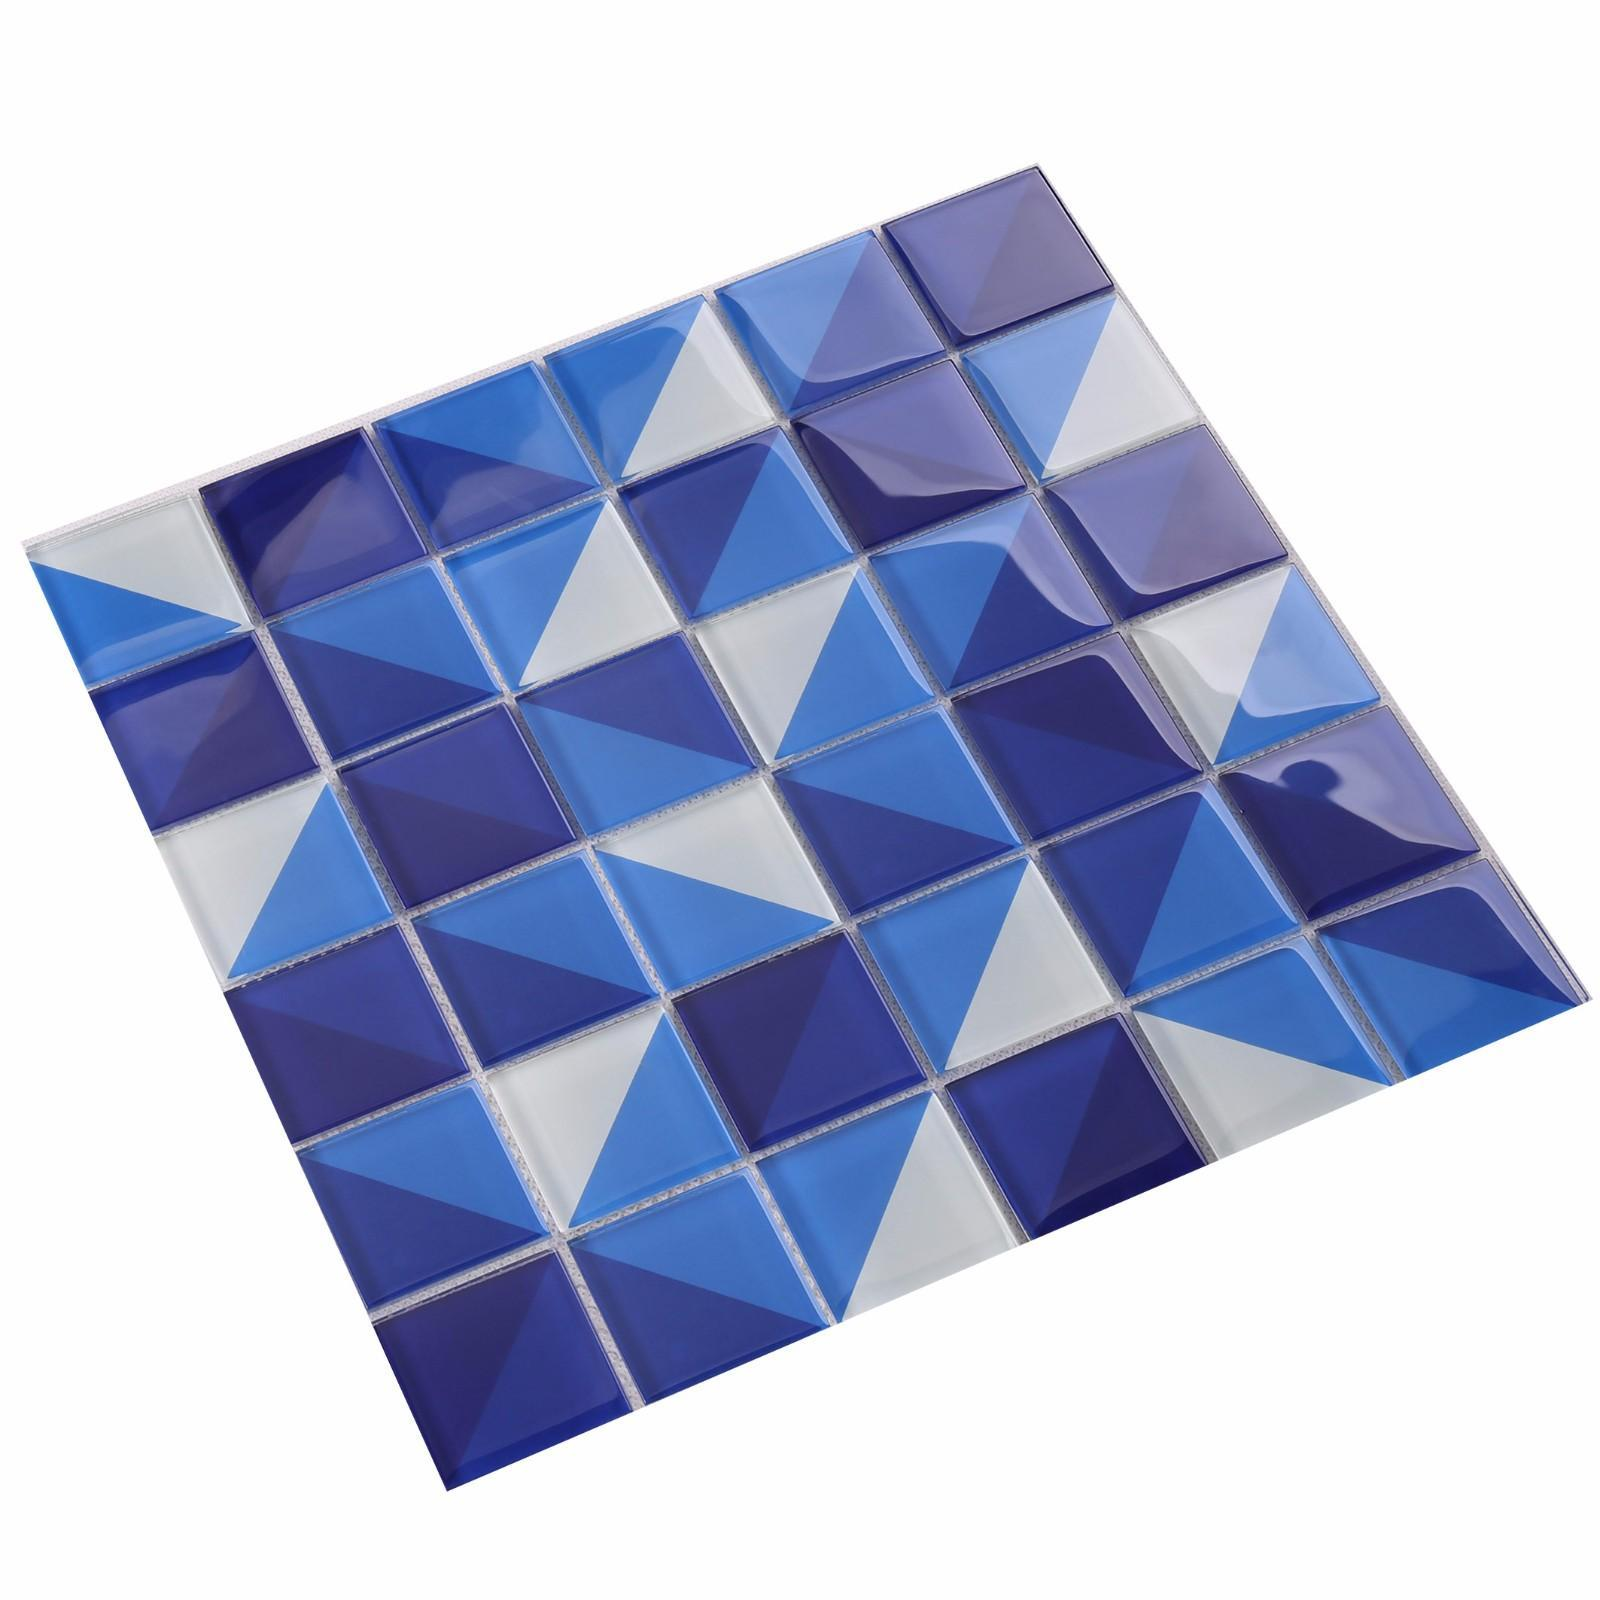 Heng Xing 2x2 modern pool tile wholesale for fountain-3